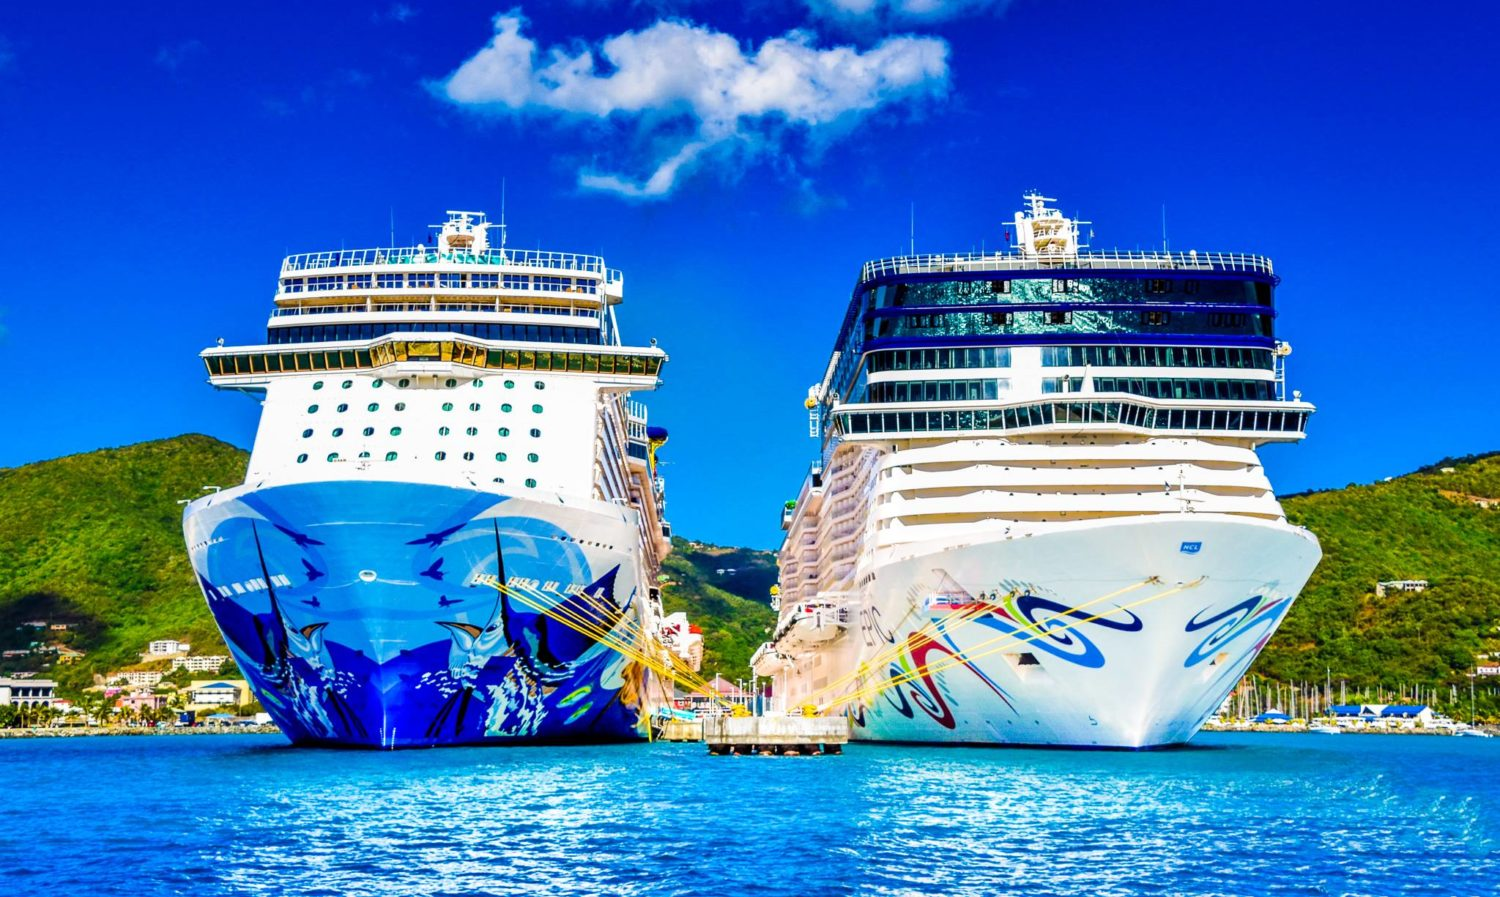 Set sail in for exciting cruises that include popular Bahamian and Caribbean destinations and itineraries from San Diego to Mexico for one month only.